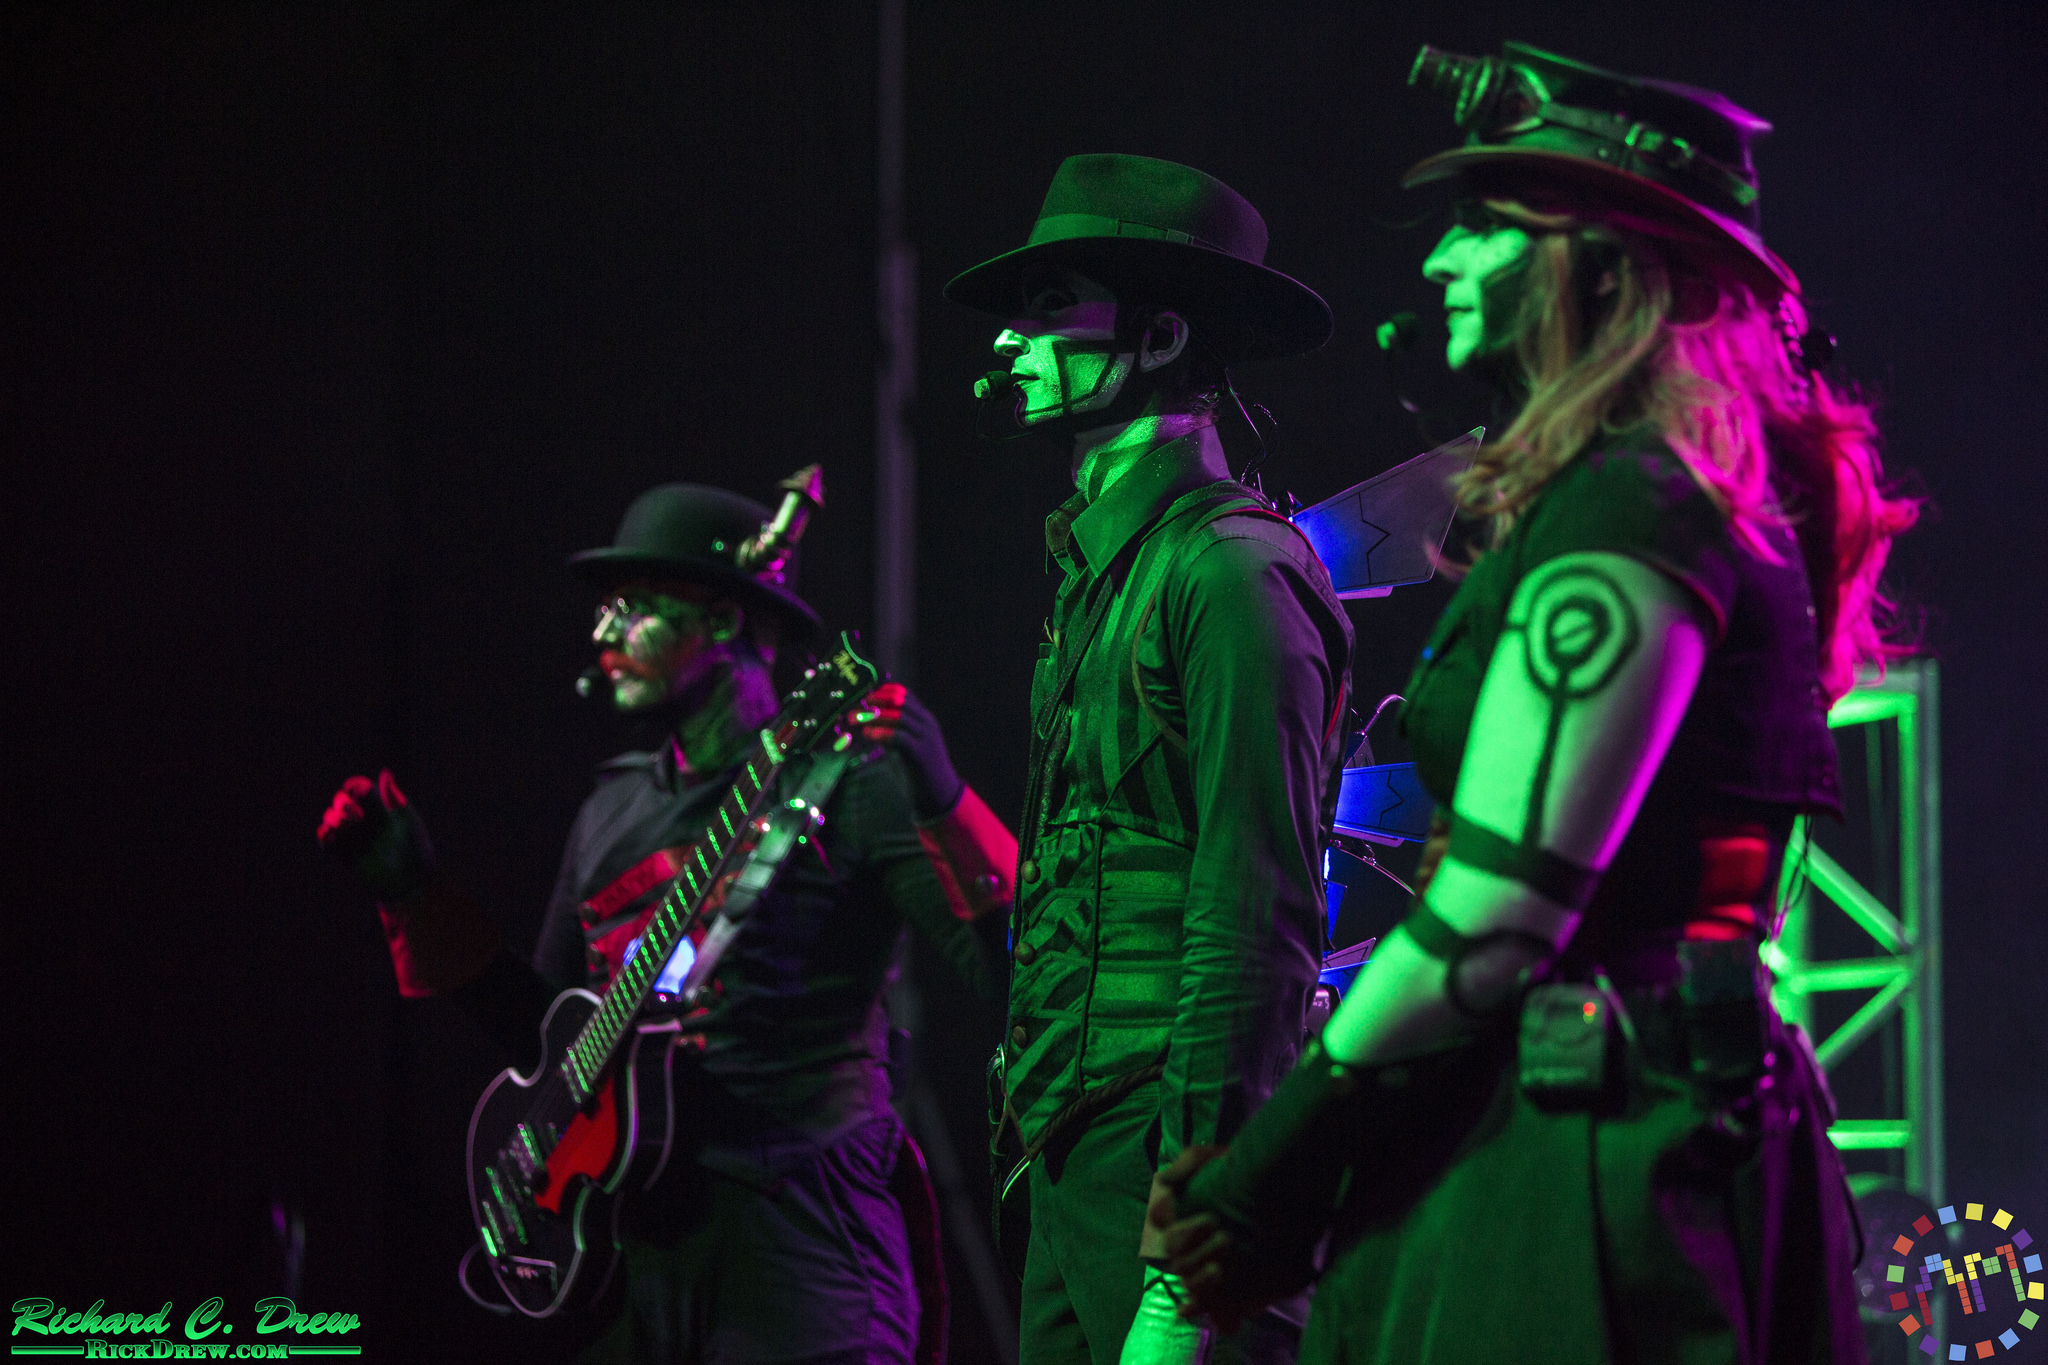 Robot Photo Steam Powered Giraffe